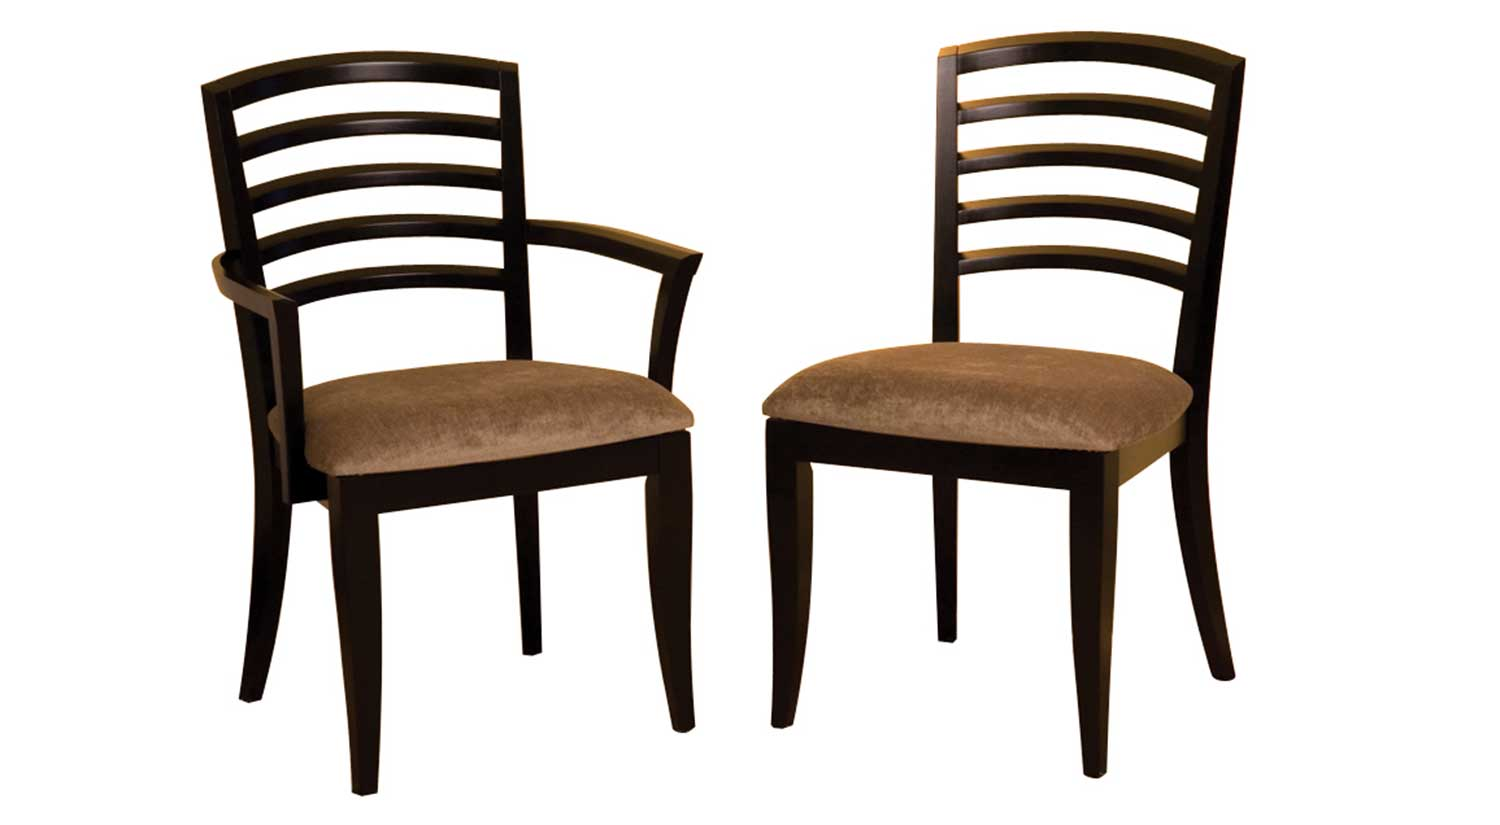 Circle furniture dean dining chair dining chairs ma for Circle furniture dining tables